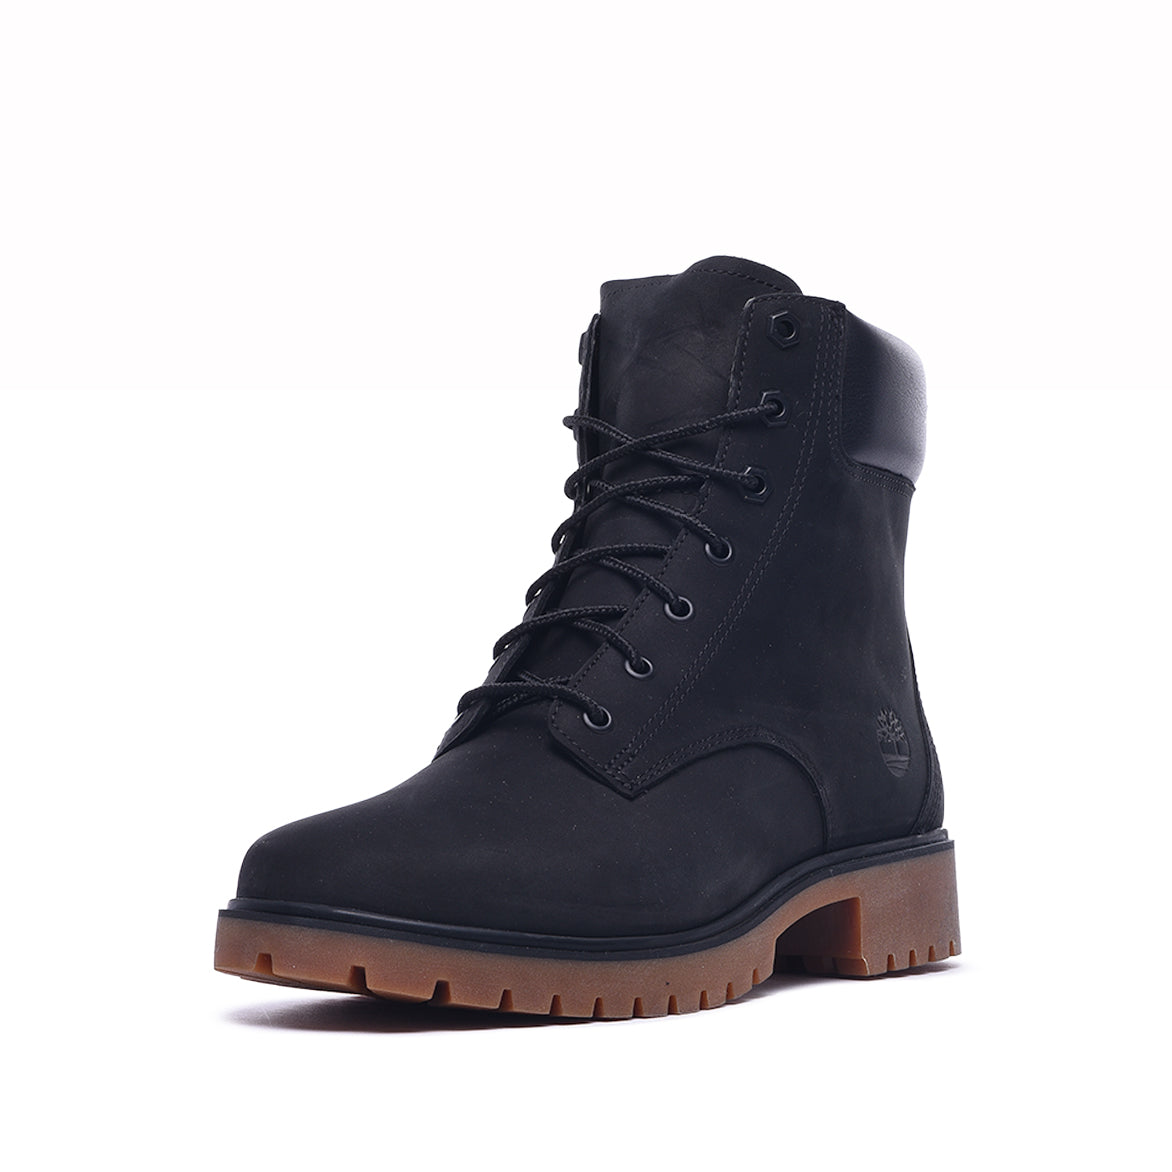 "WMNS JAYNE 6"" WATERPROOF BOOT - BLACK NUBUCK"